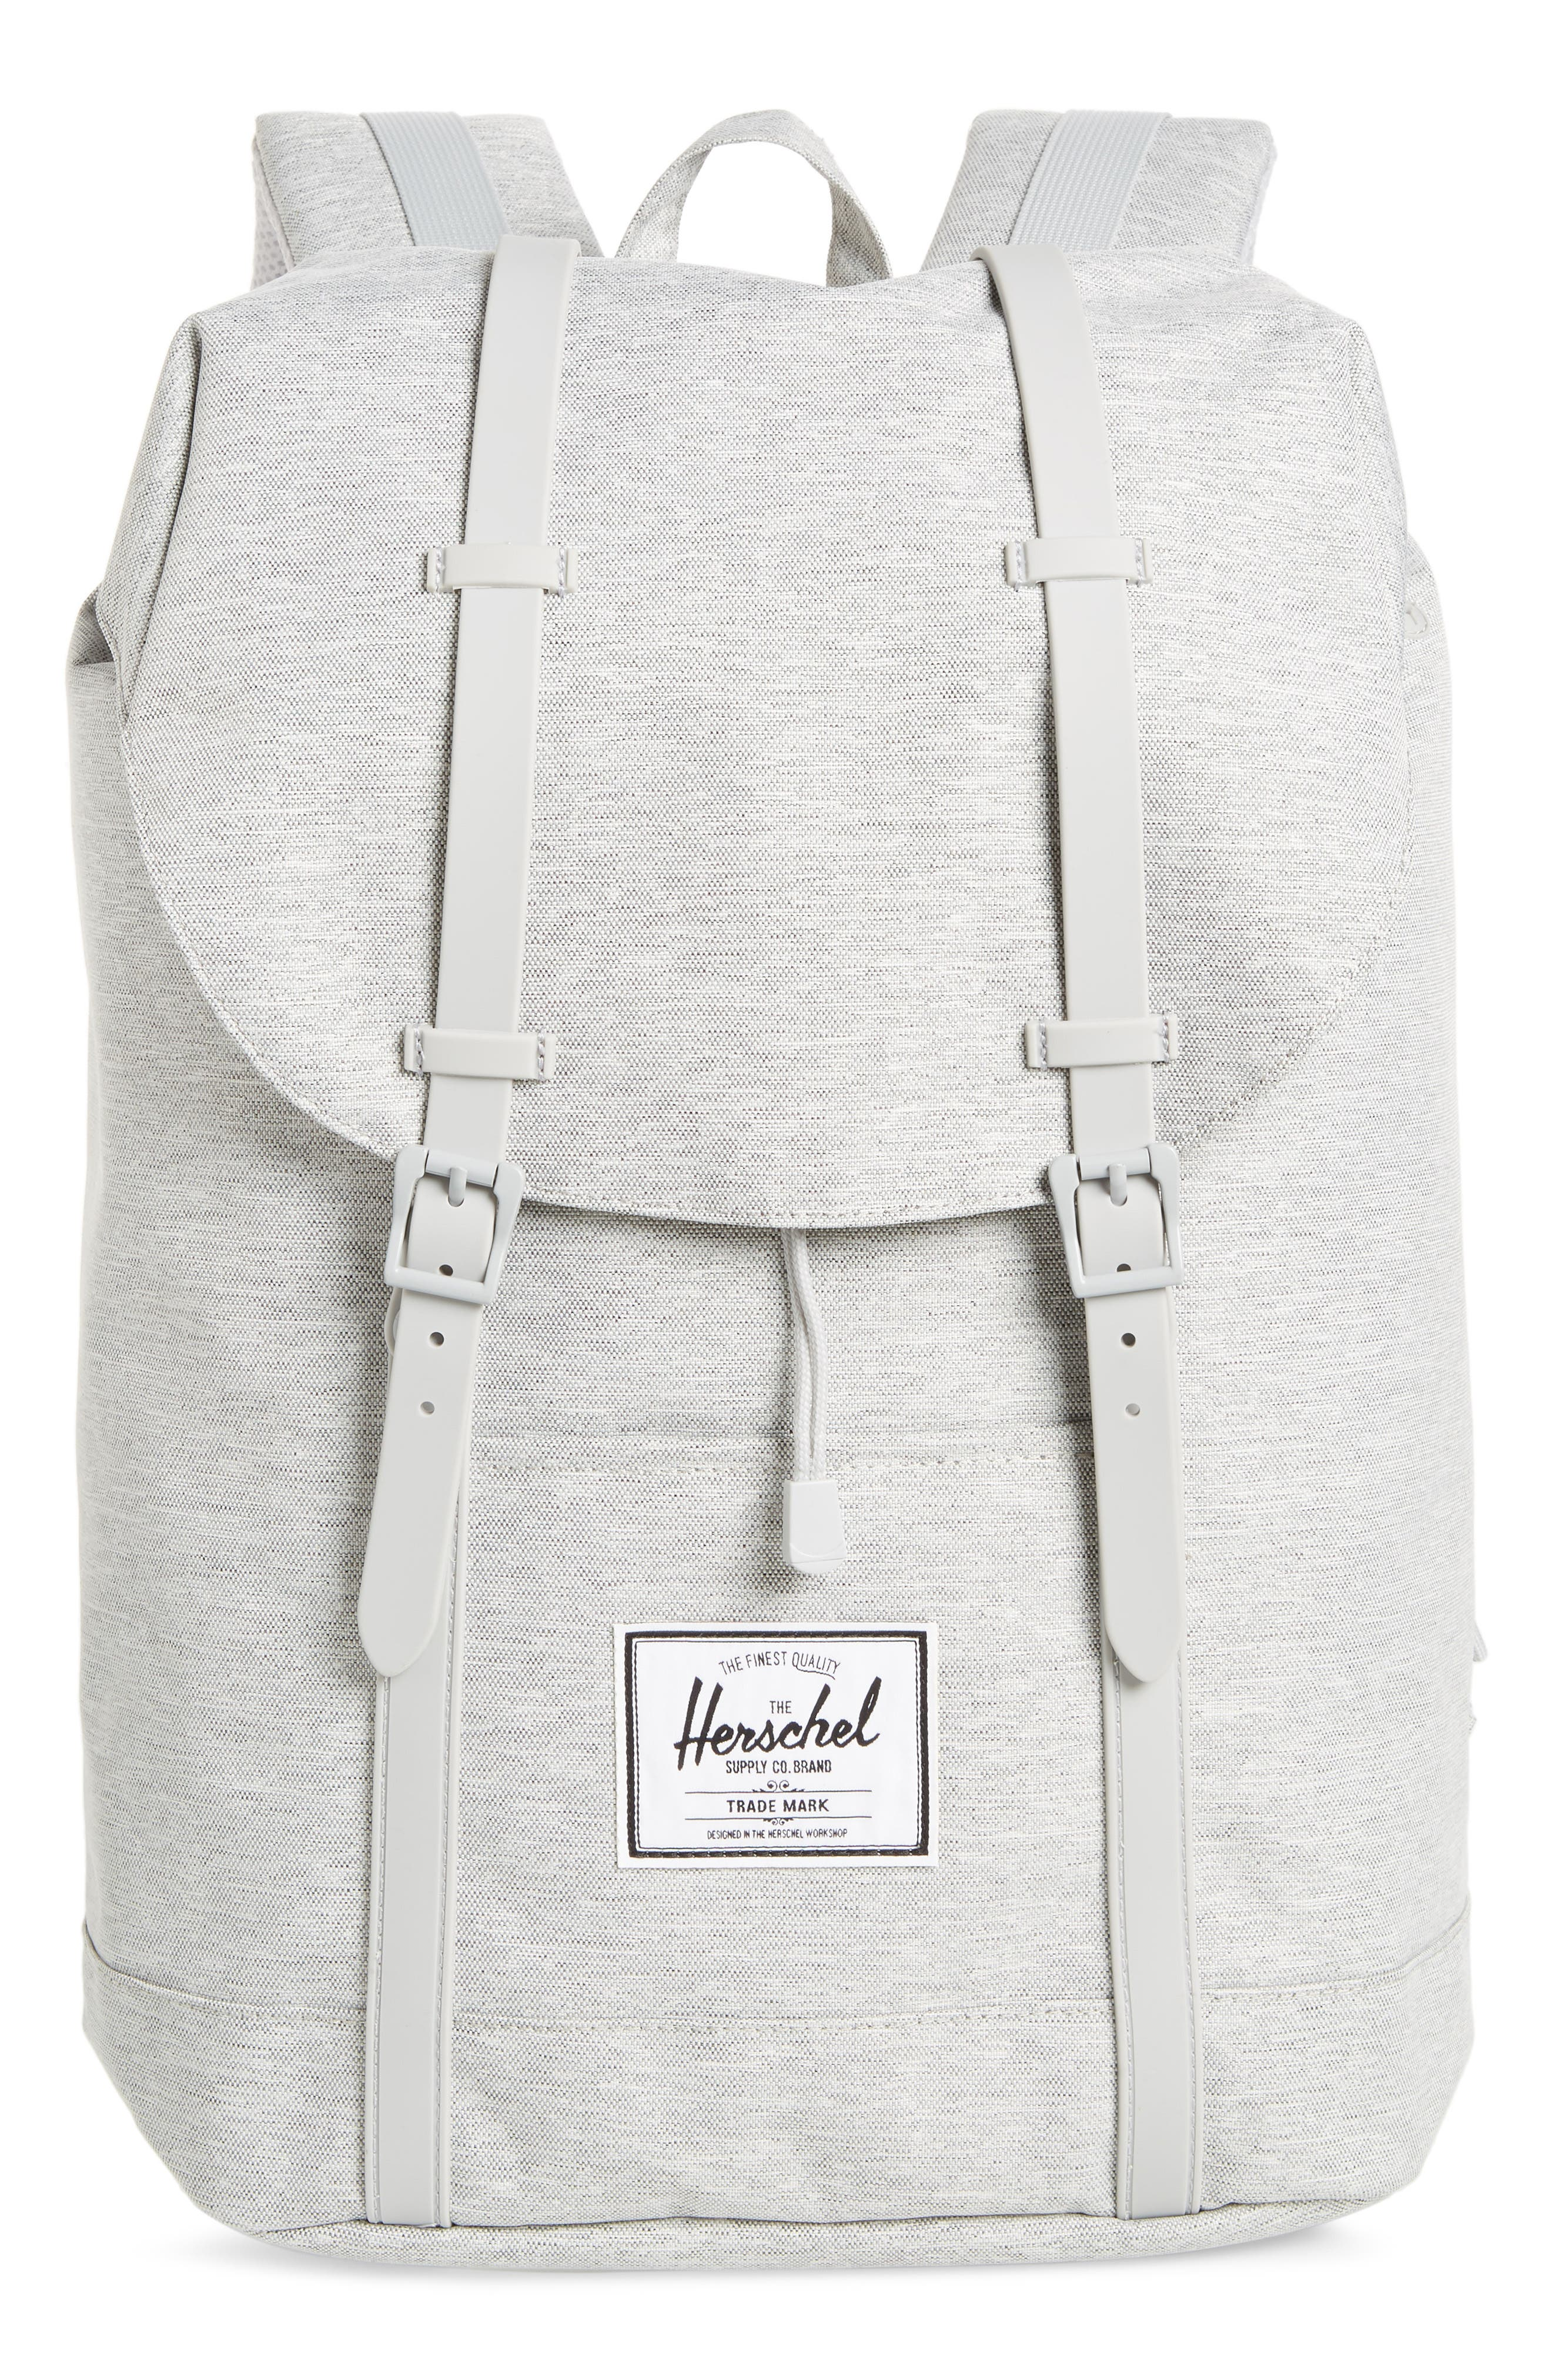 HERSCHEL SUPPLY CO., Retreat Backpack, Main thumbnail 1, color, LIGHT GREY CROSSHATCH/ GREY